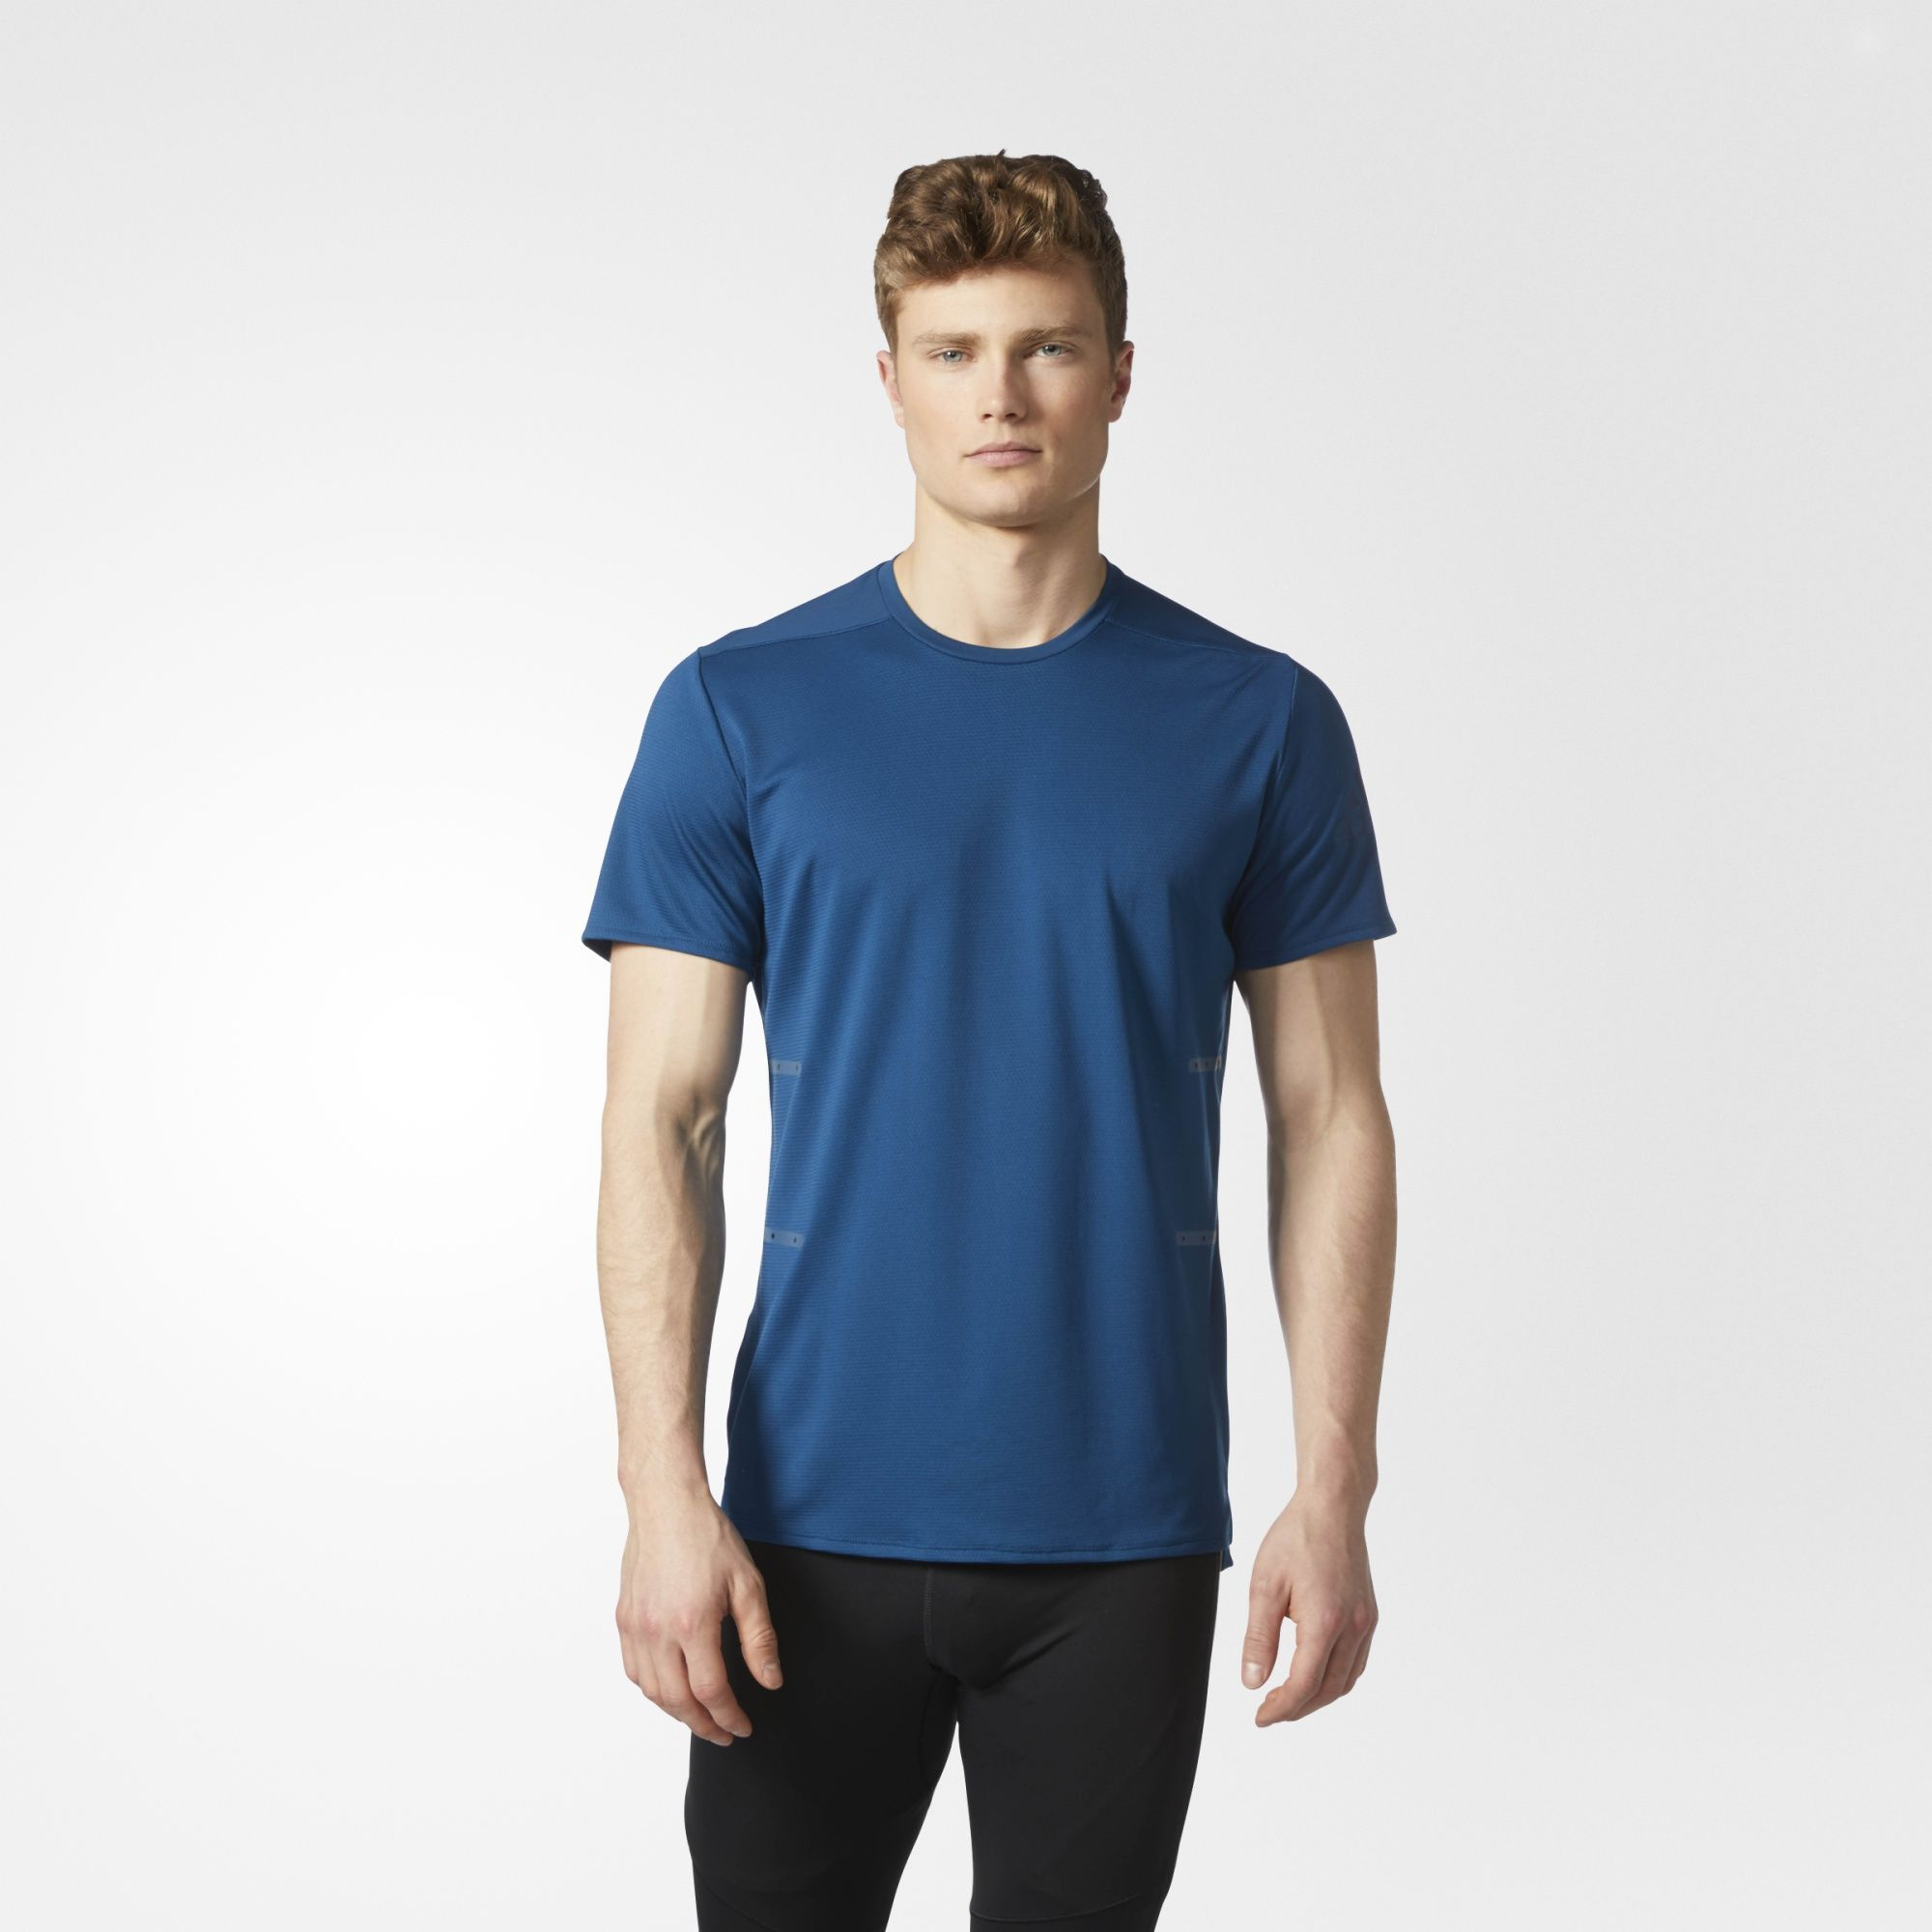 adidas - Supernova 37c Tee Suit up for your run in smooth comfort. This  men's